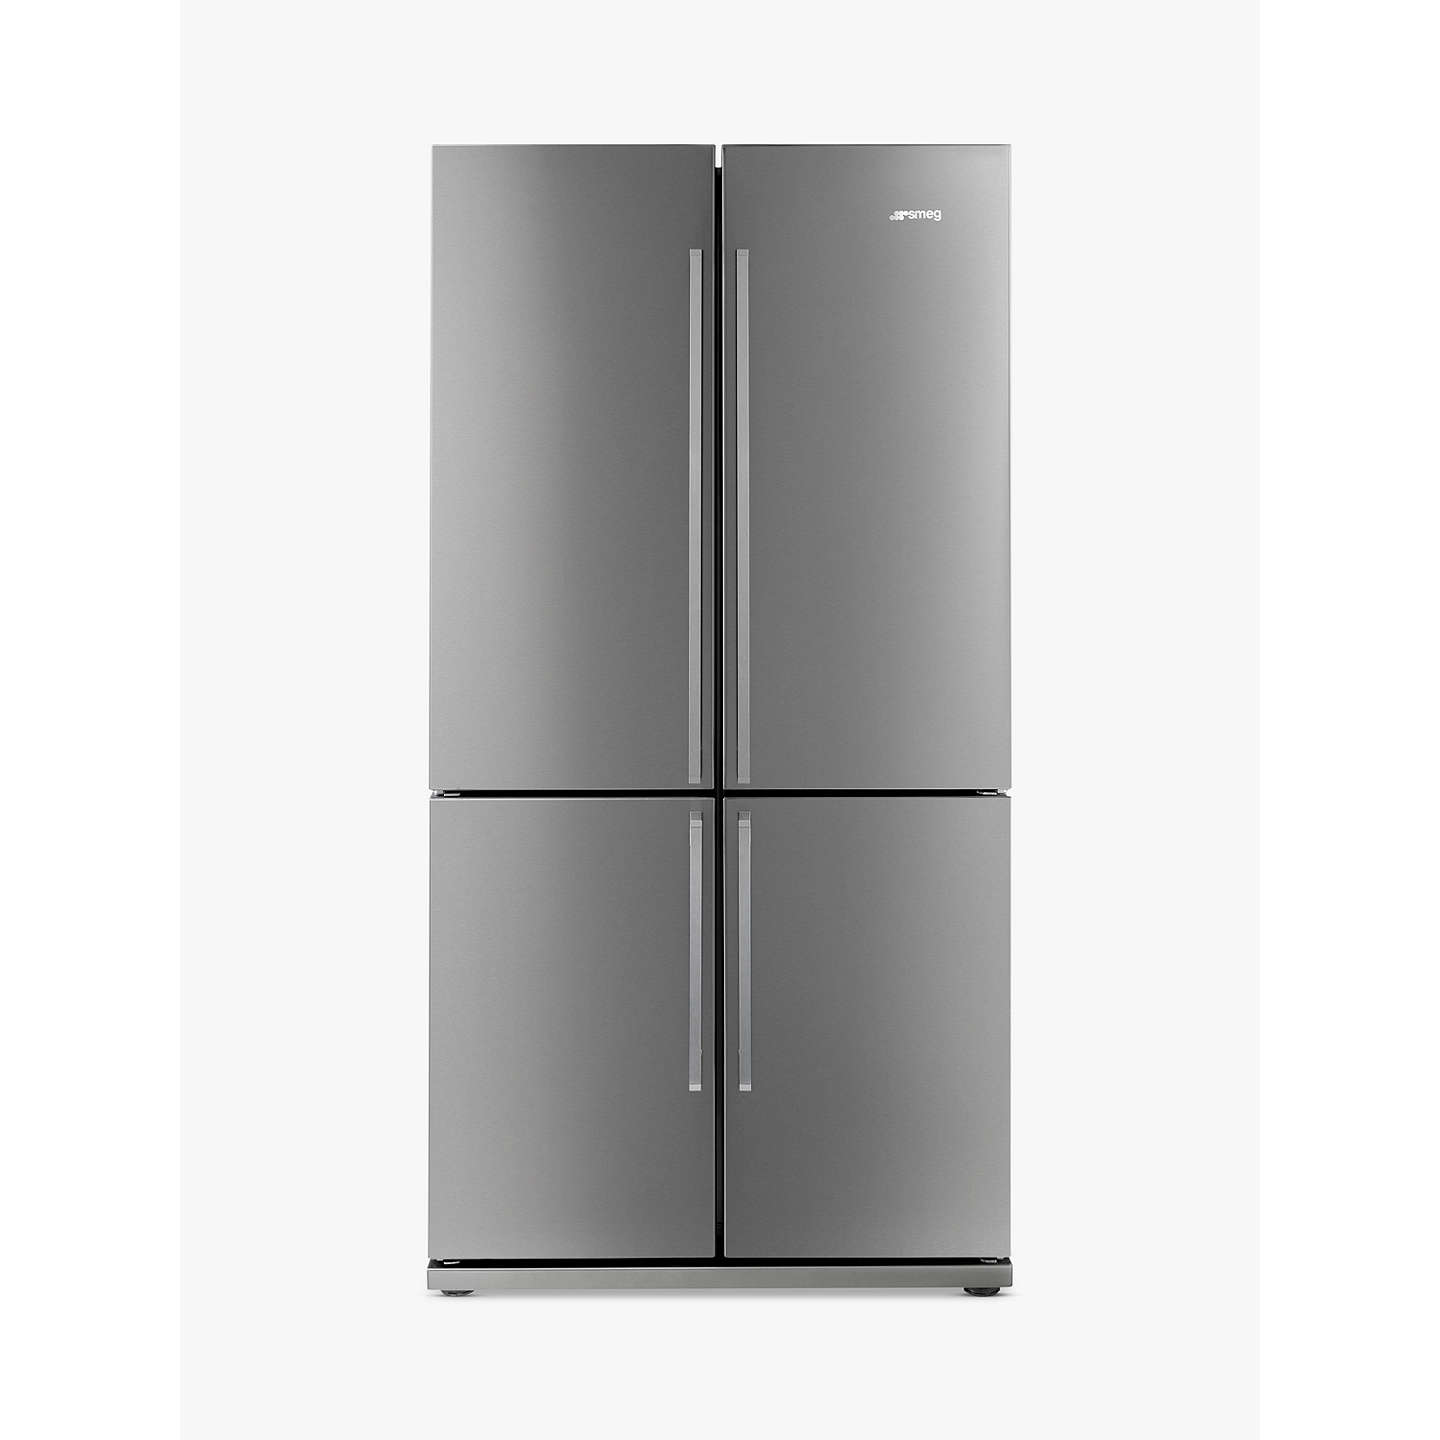 Smeg Fq60xp 4 Door American Style Fridge Freezer A